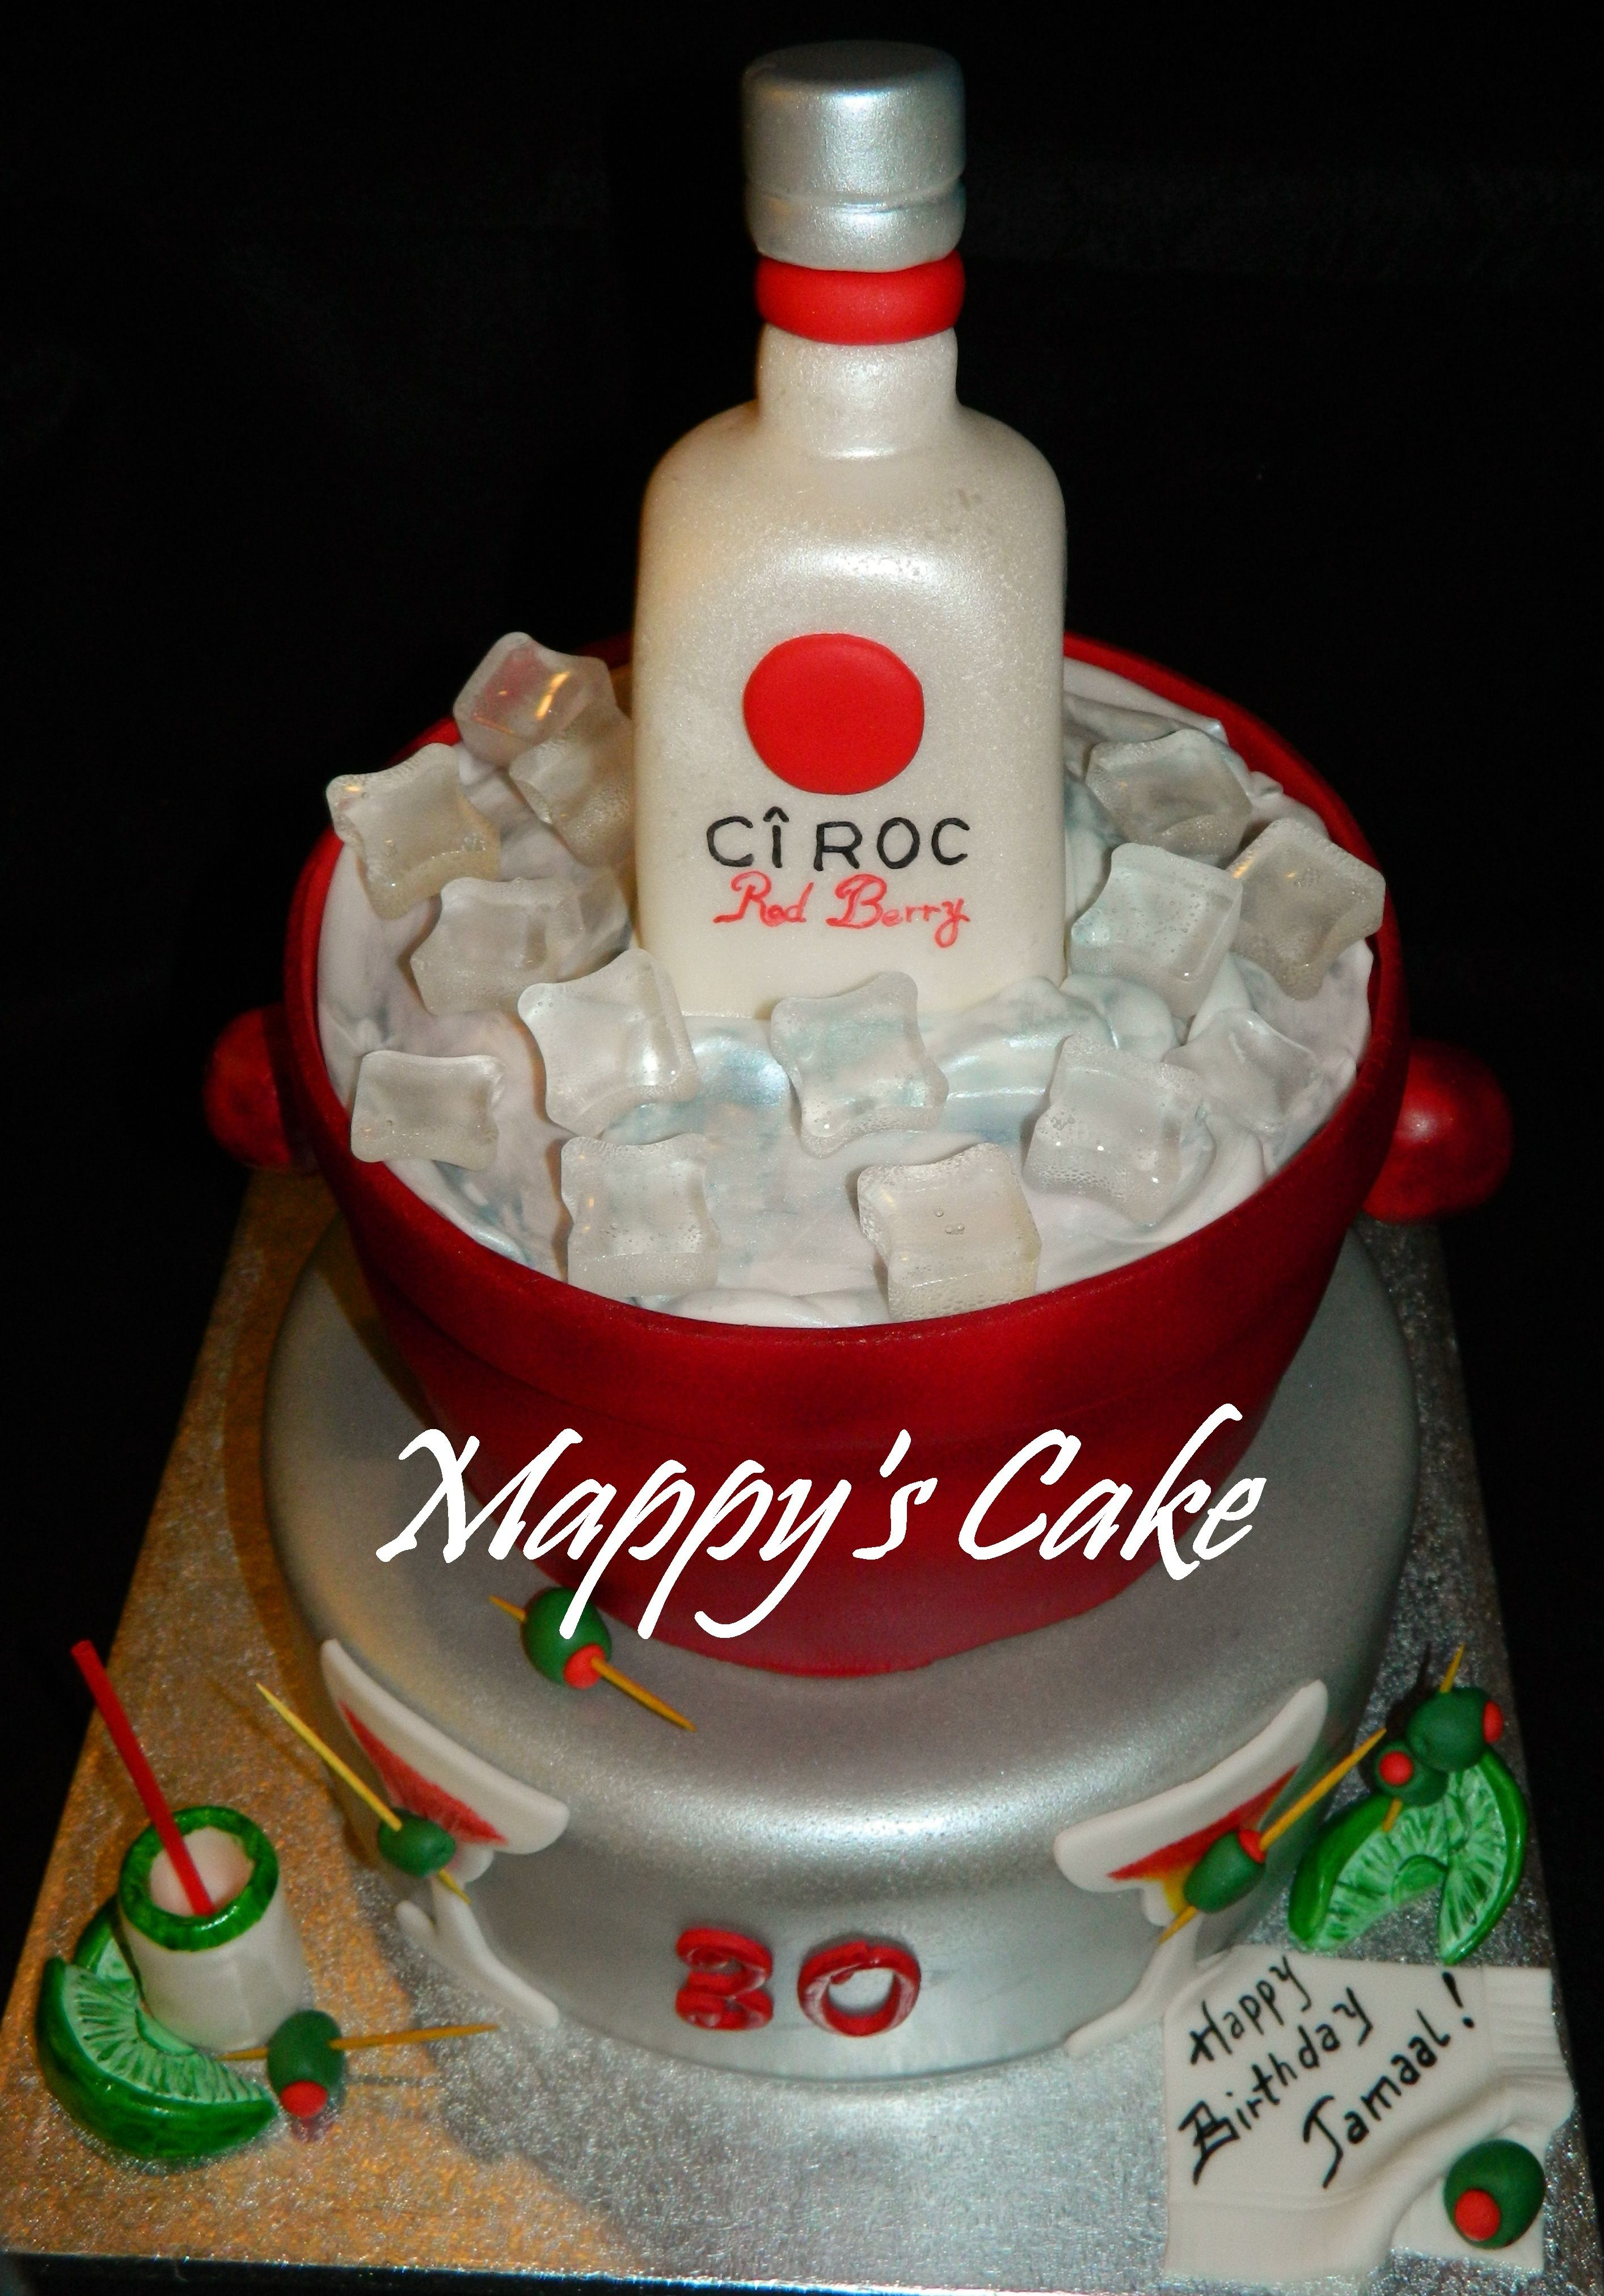 Surprising Ciroc Red Berry Vodka Cake Adult Birthday Cakes Occasion Cakes Funny Birthday Cards Online Fluifree Goldxyz